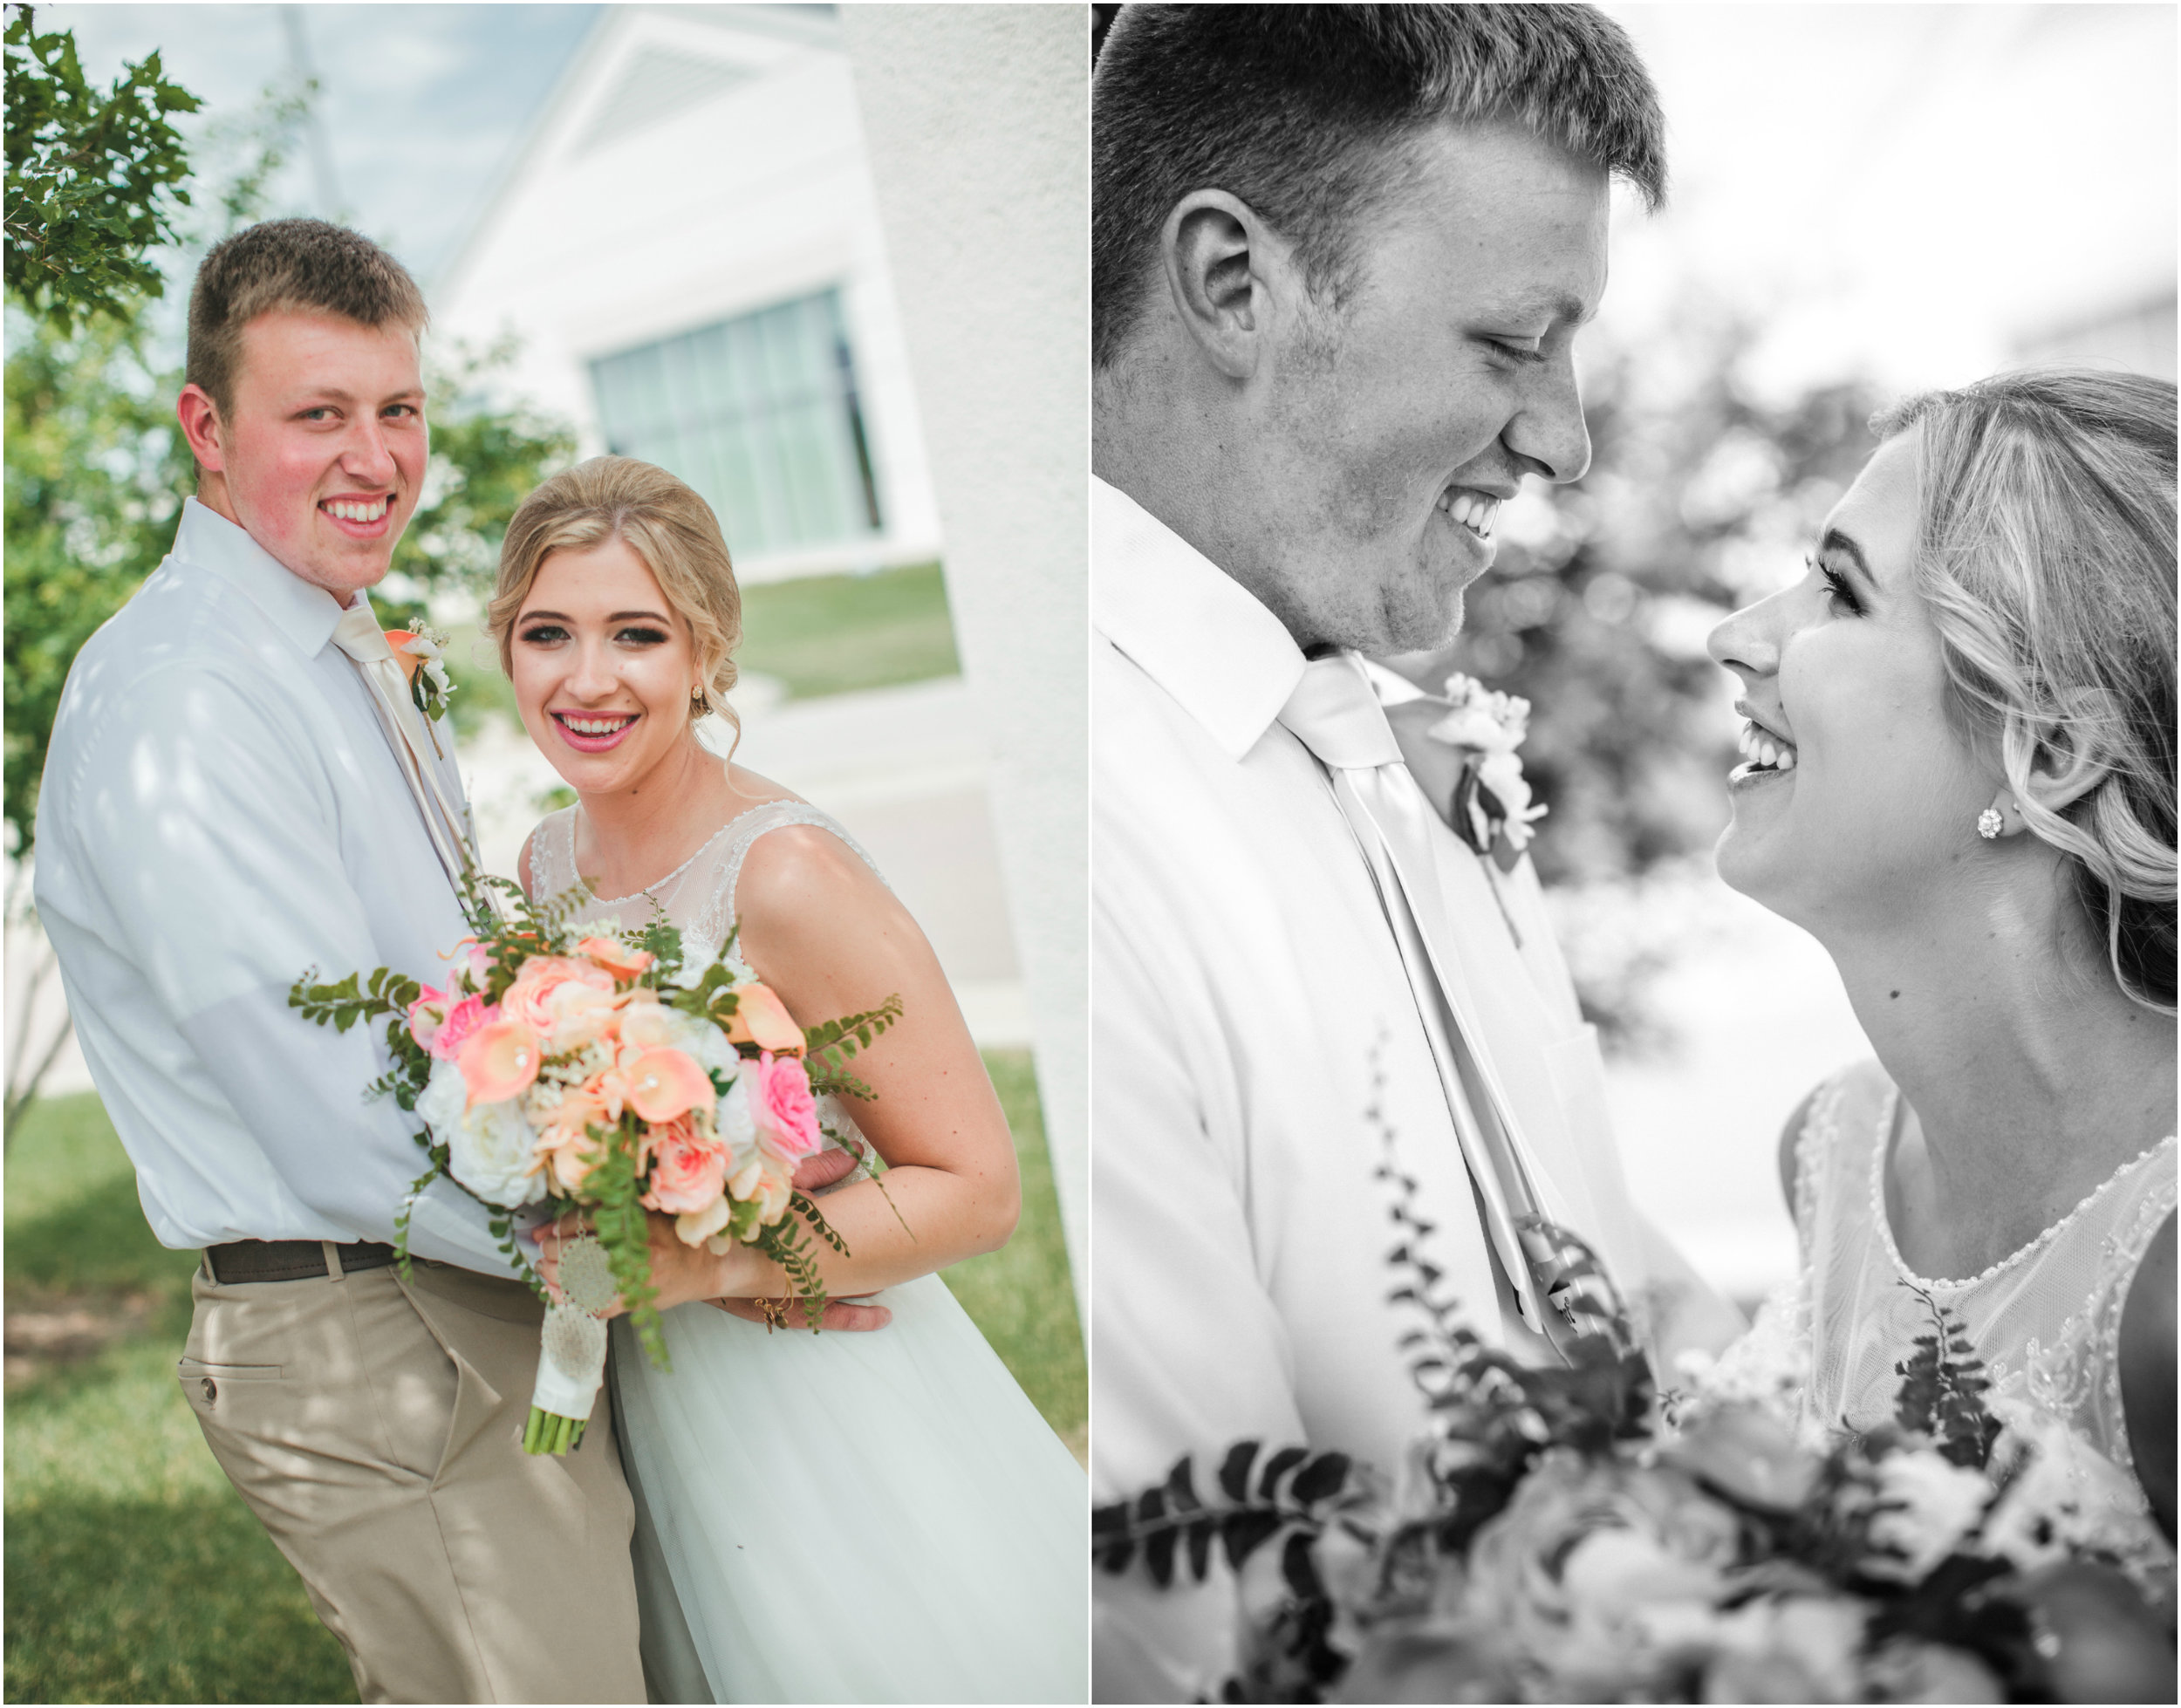 Sioux Falls Bride and Groom.jpg